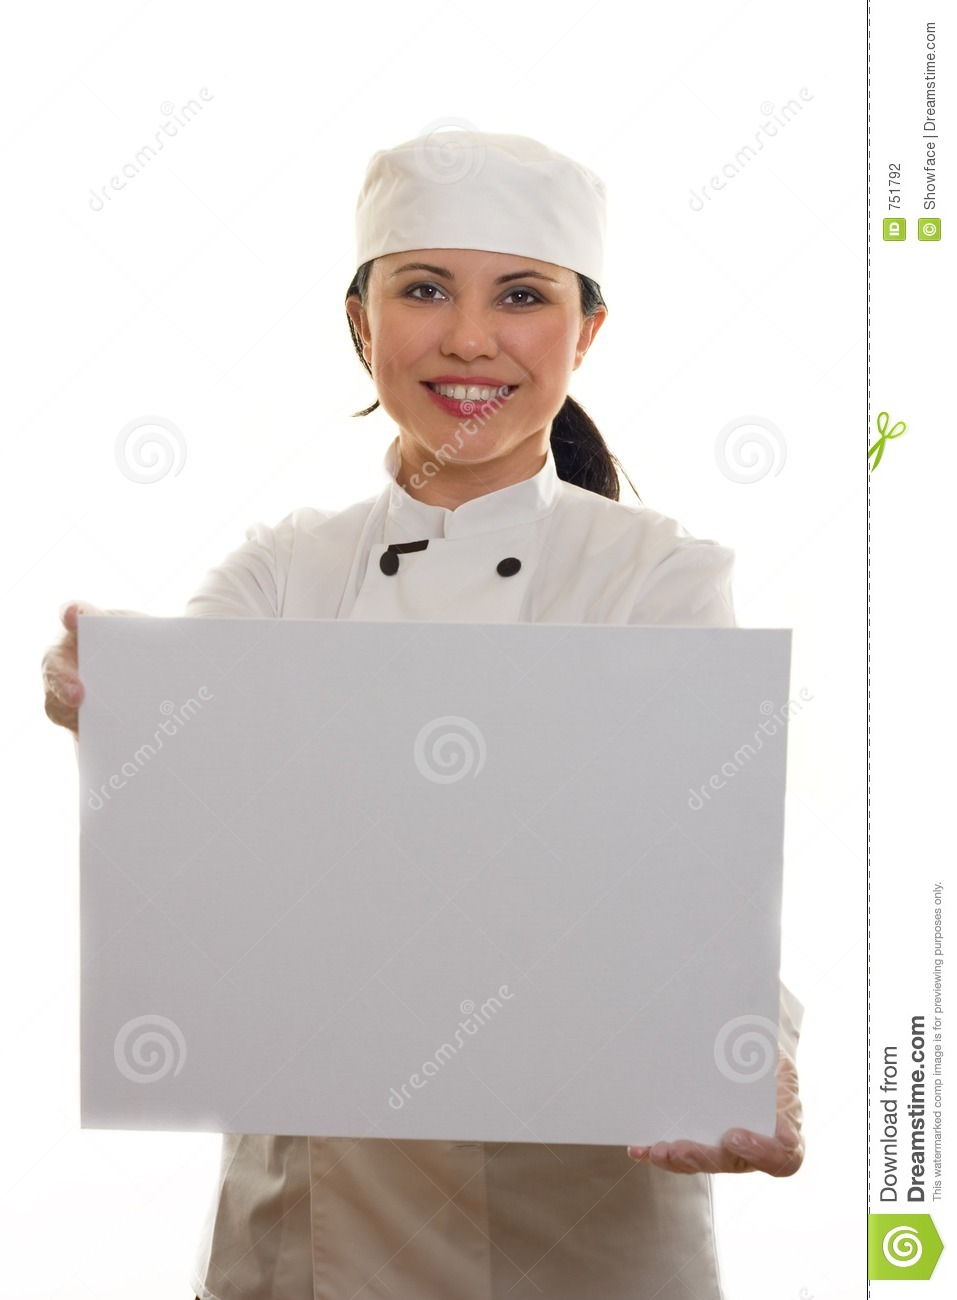 Chef or Cook